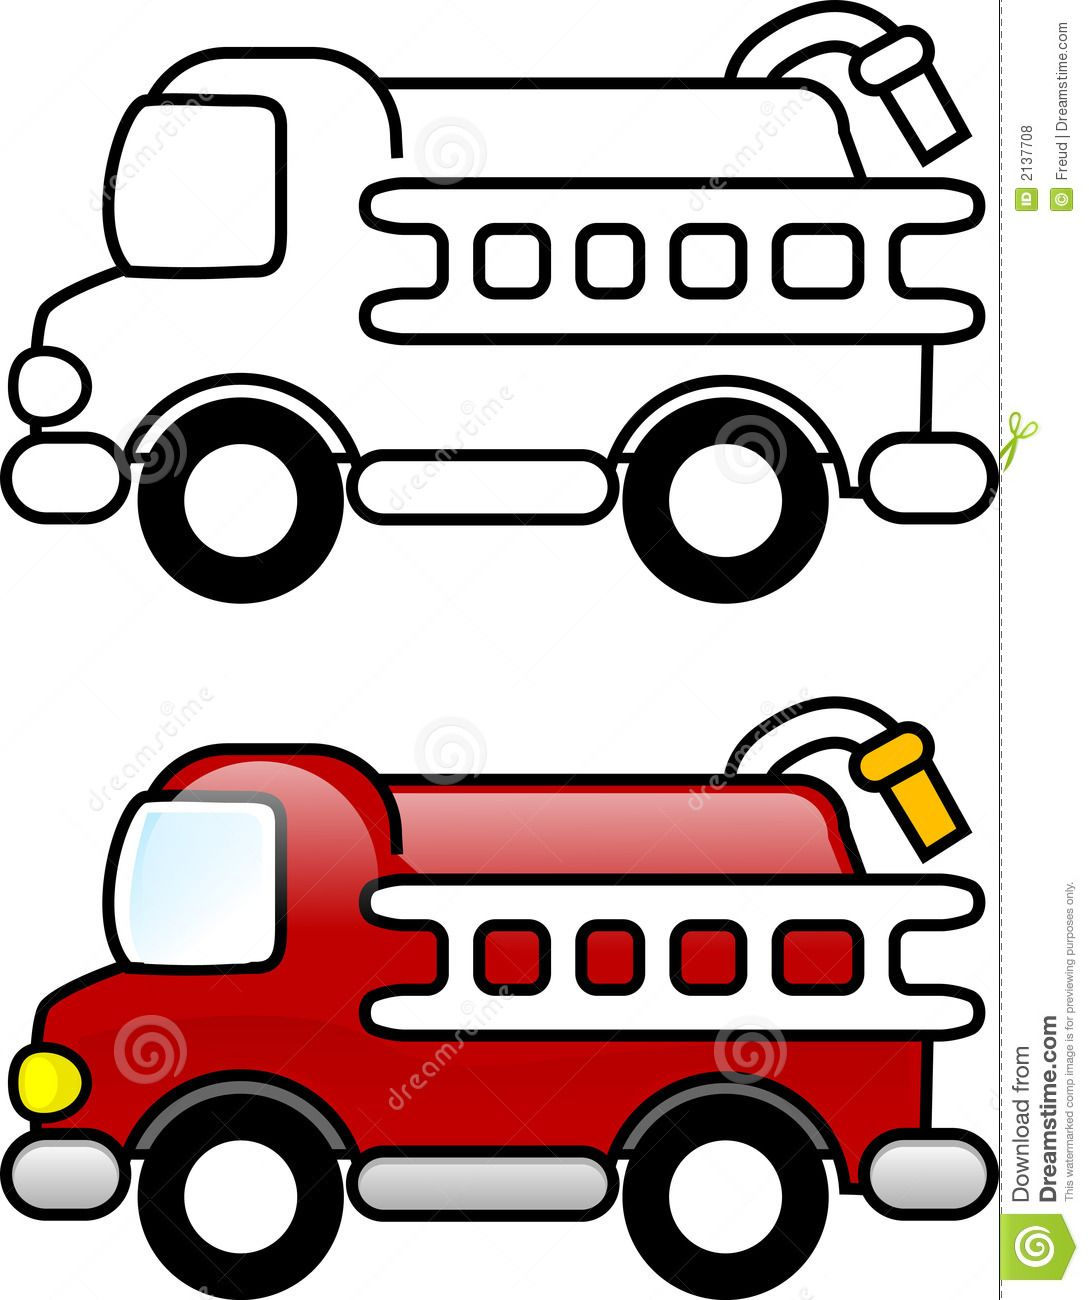 Preschool Fire Truck Coloring Pages Children Truck